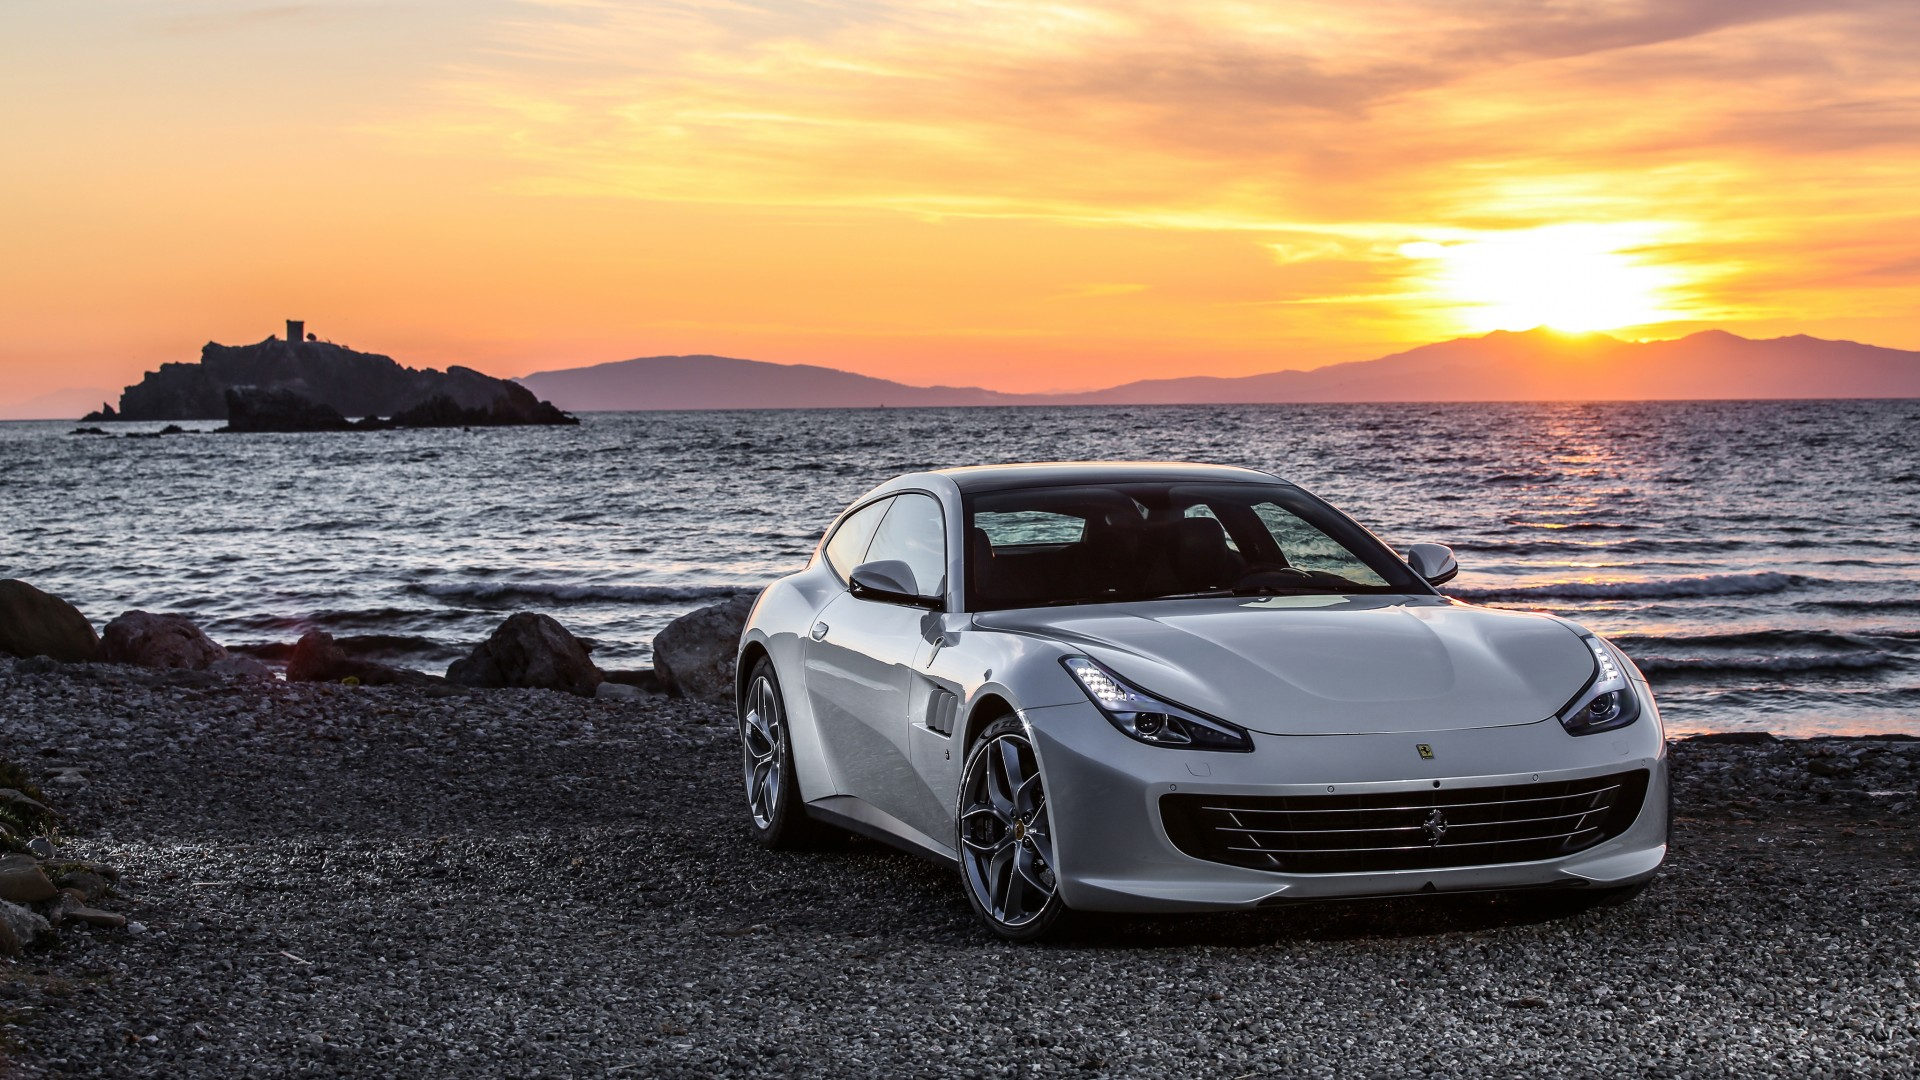 Ferrari GTC4Lusso T 2017 4K Wallpaper | HD Car Wallpapers ...